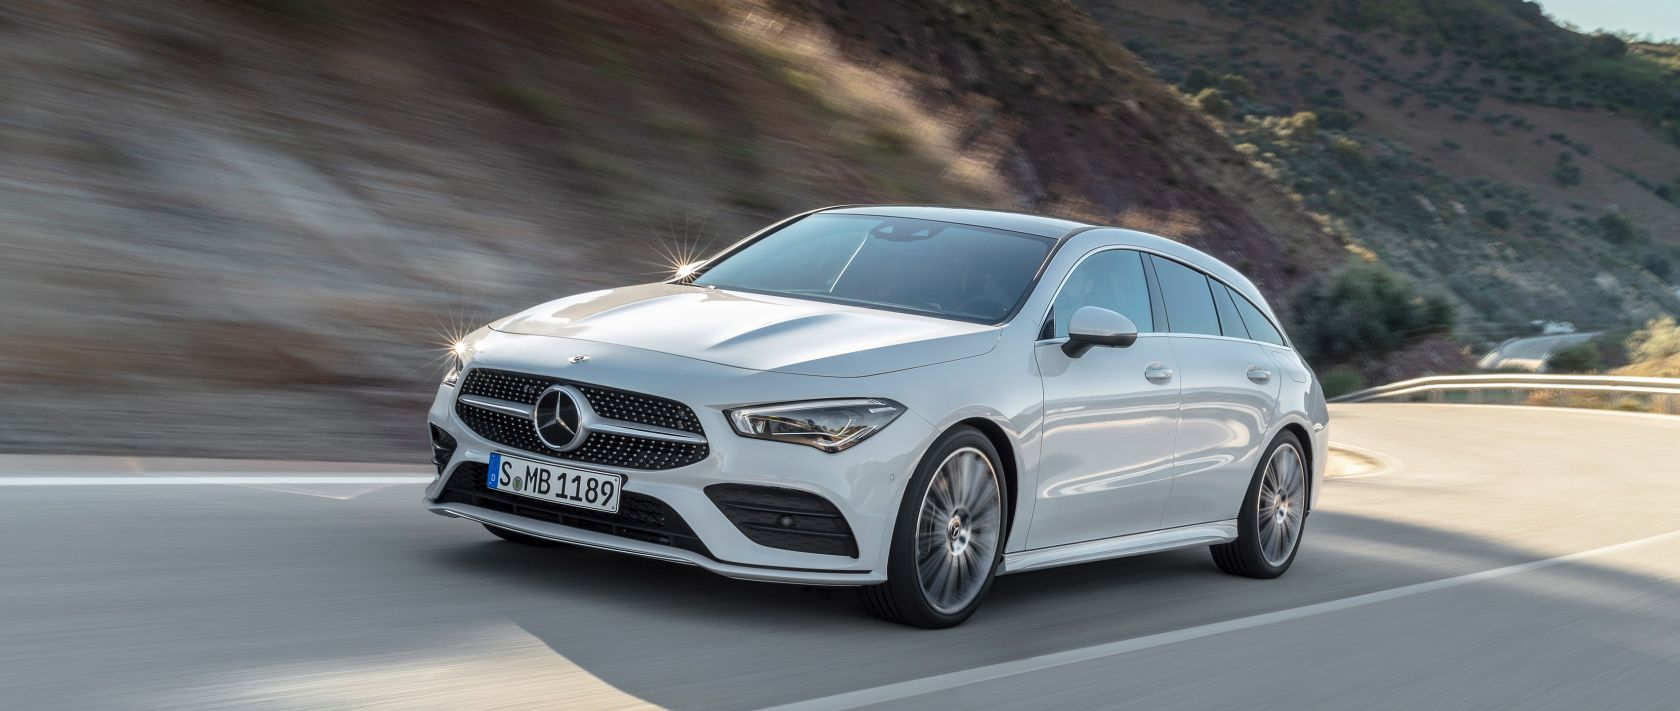 Cars That Start With S >> Start Of Production Of The Cla Shooting Brake At The Plant